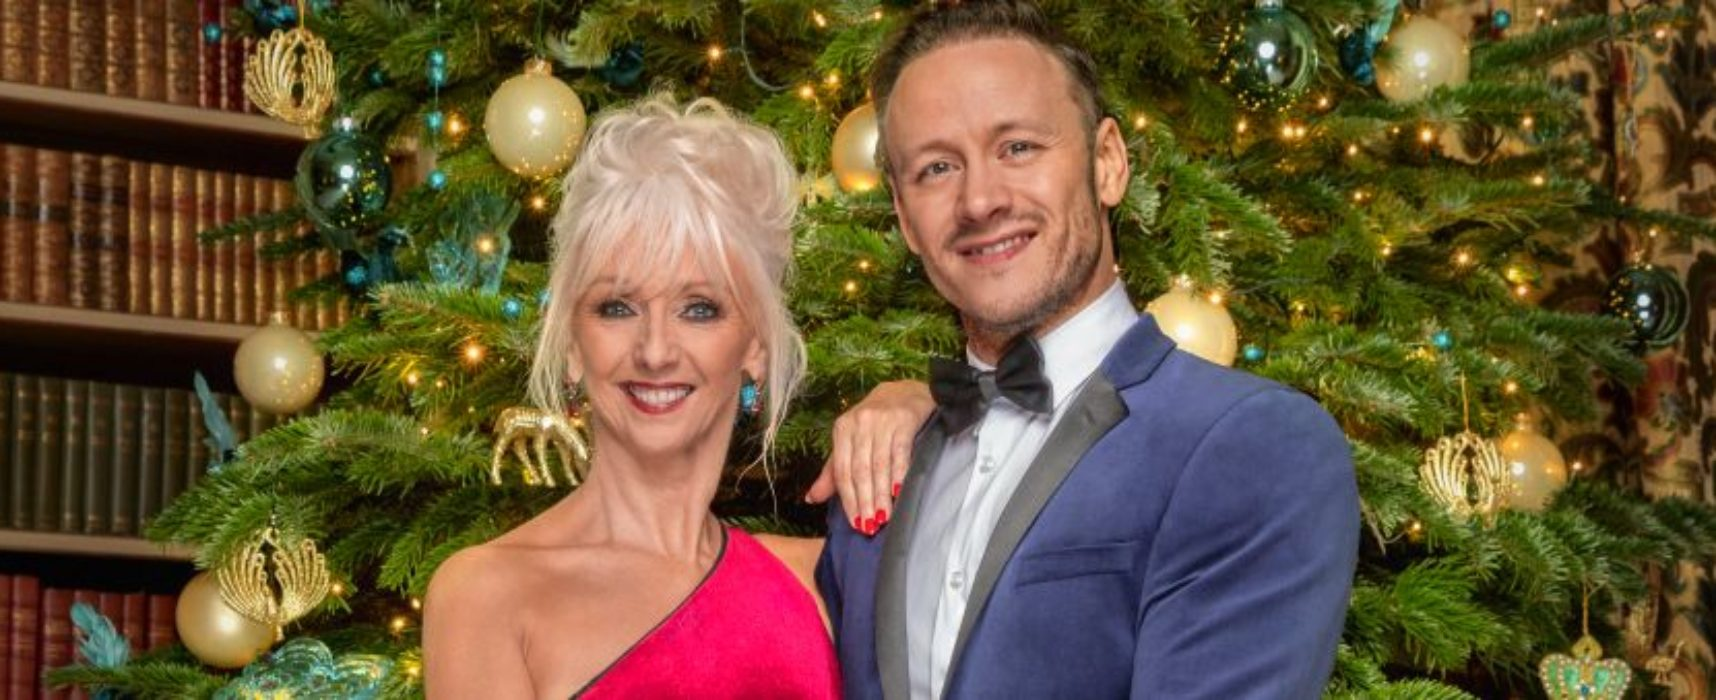 Debbie McGee wins Strictly Christmas special